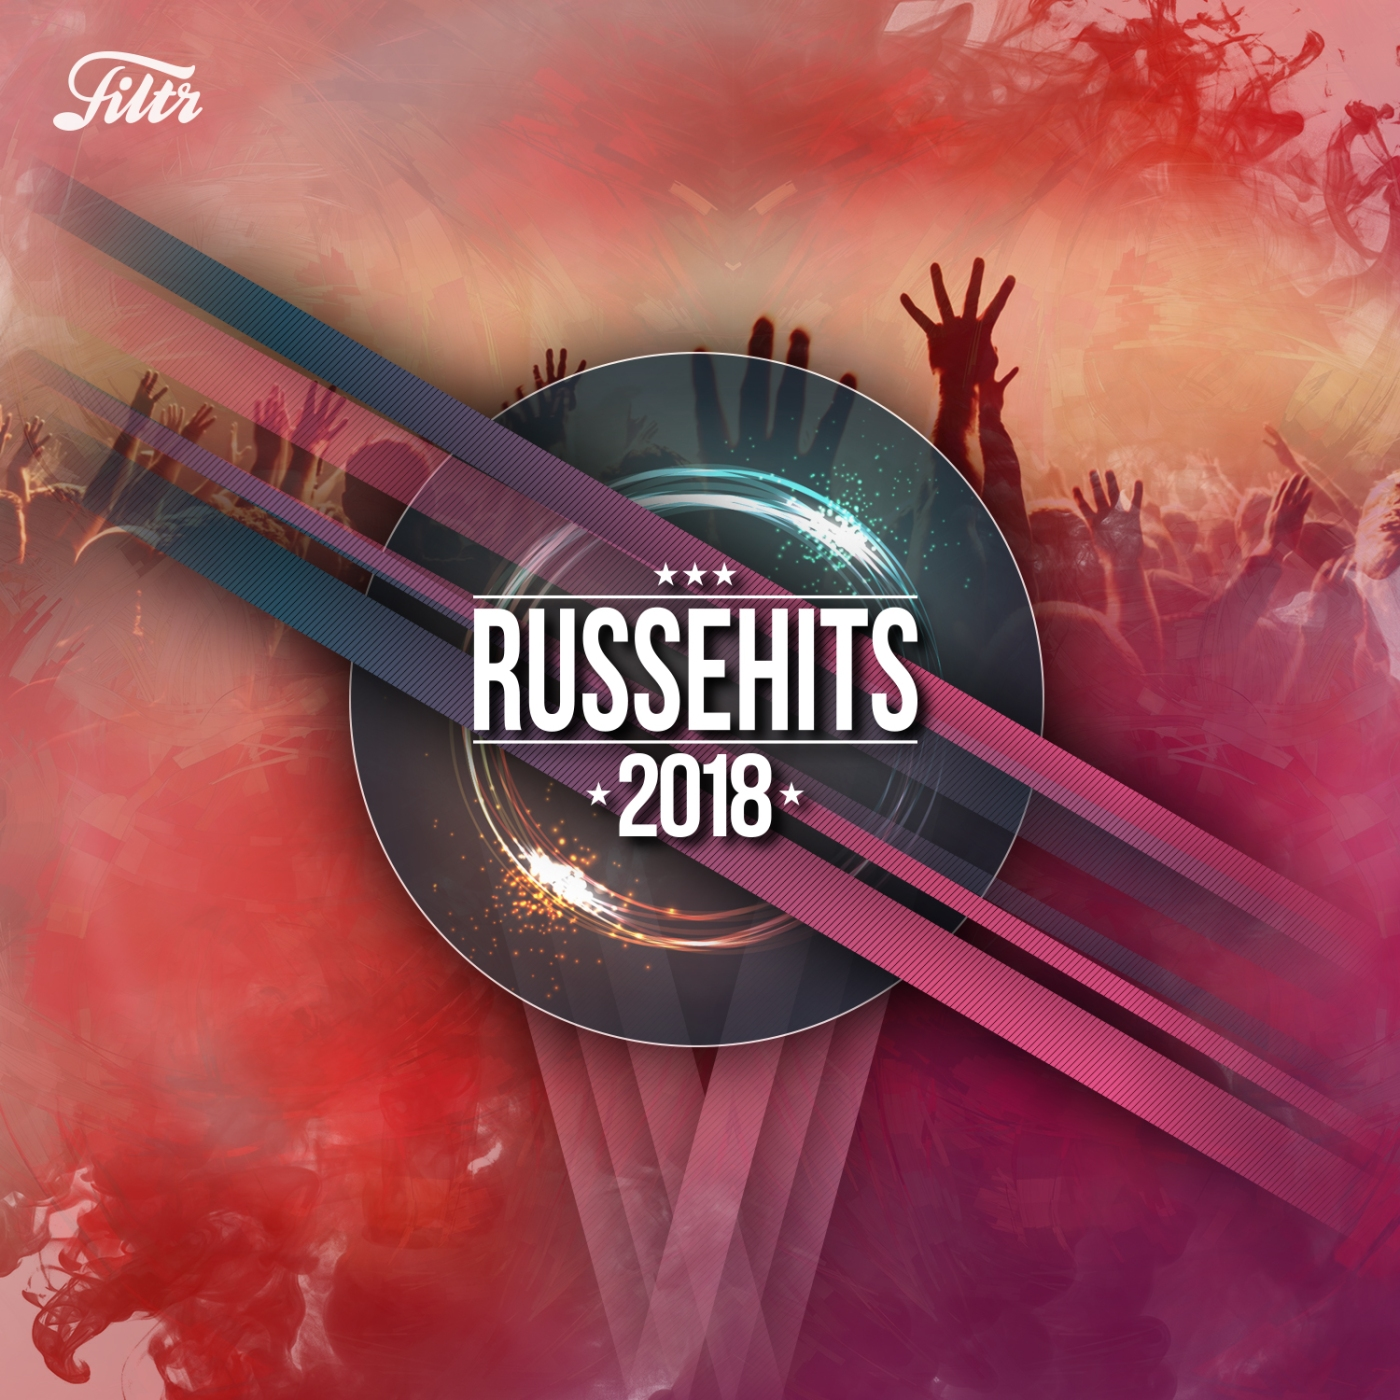 Russehits 2018